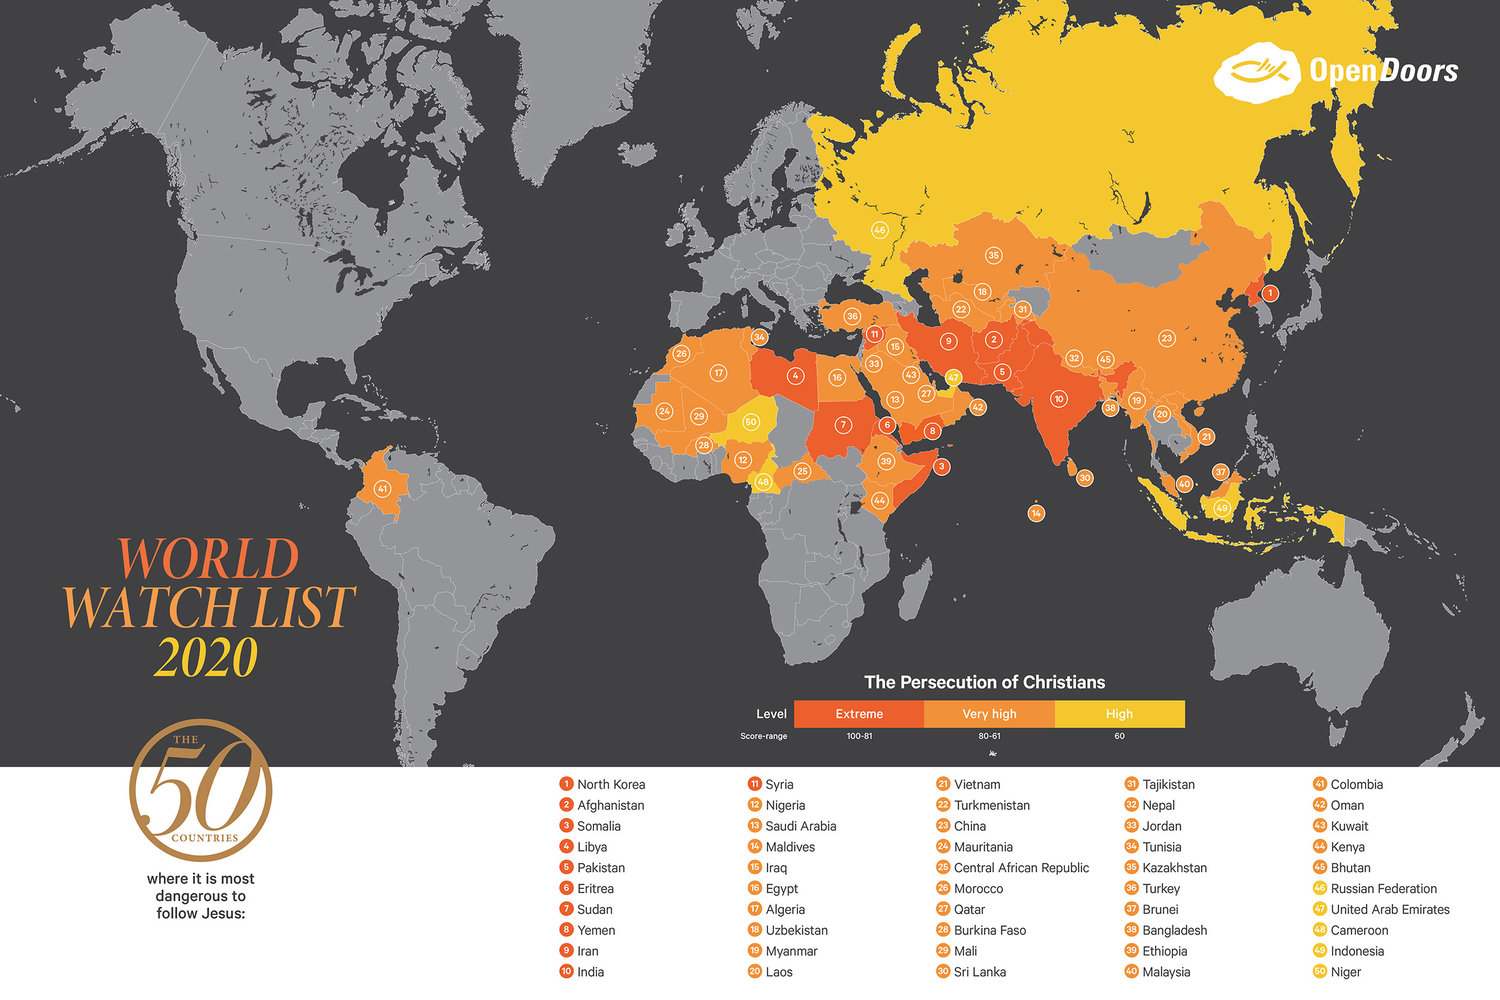 50 countries that are dangerous to follow Jesus